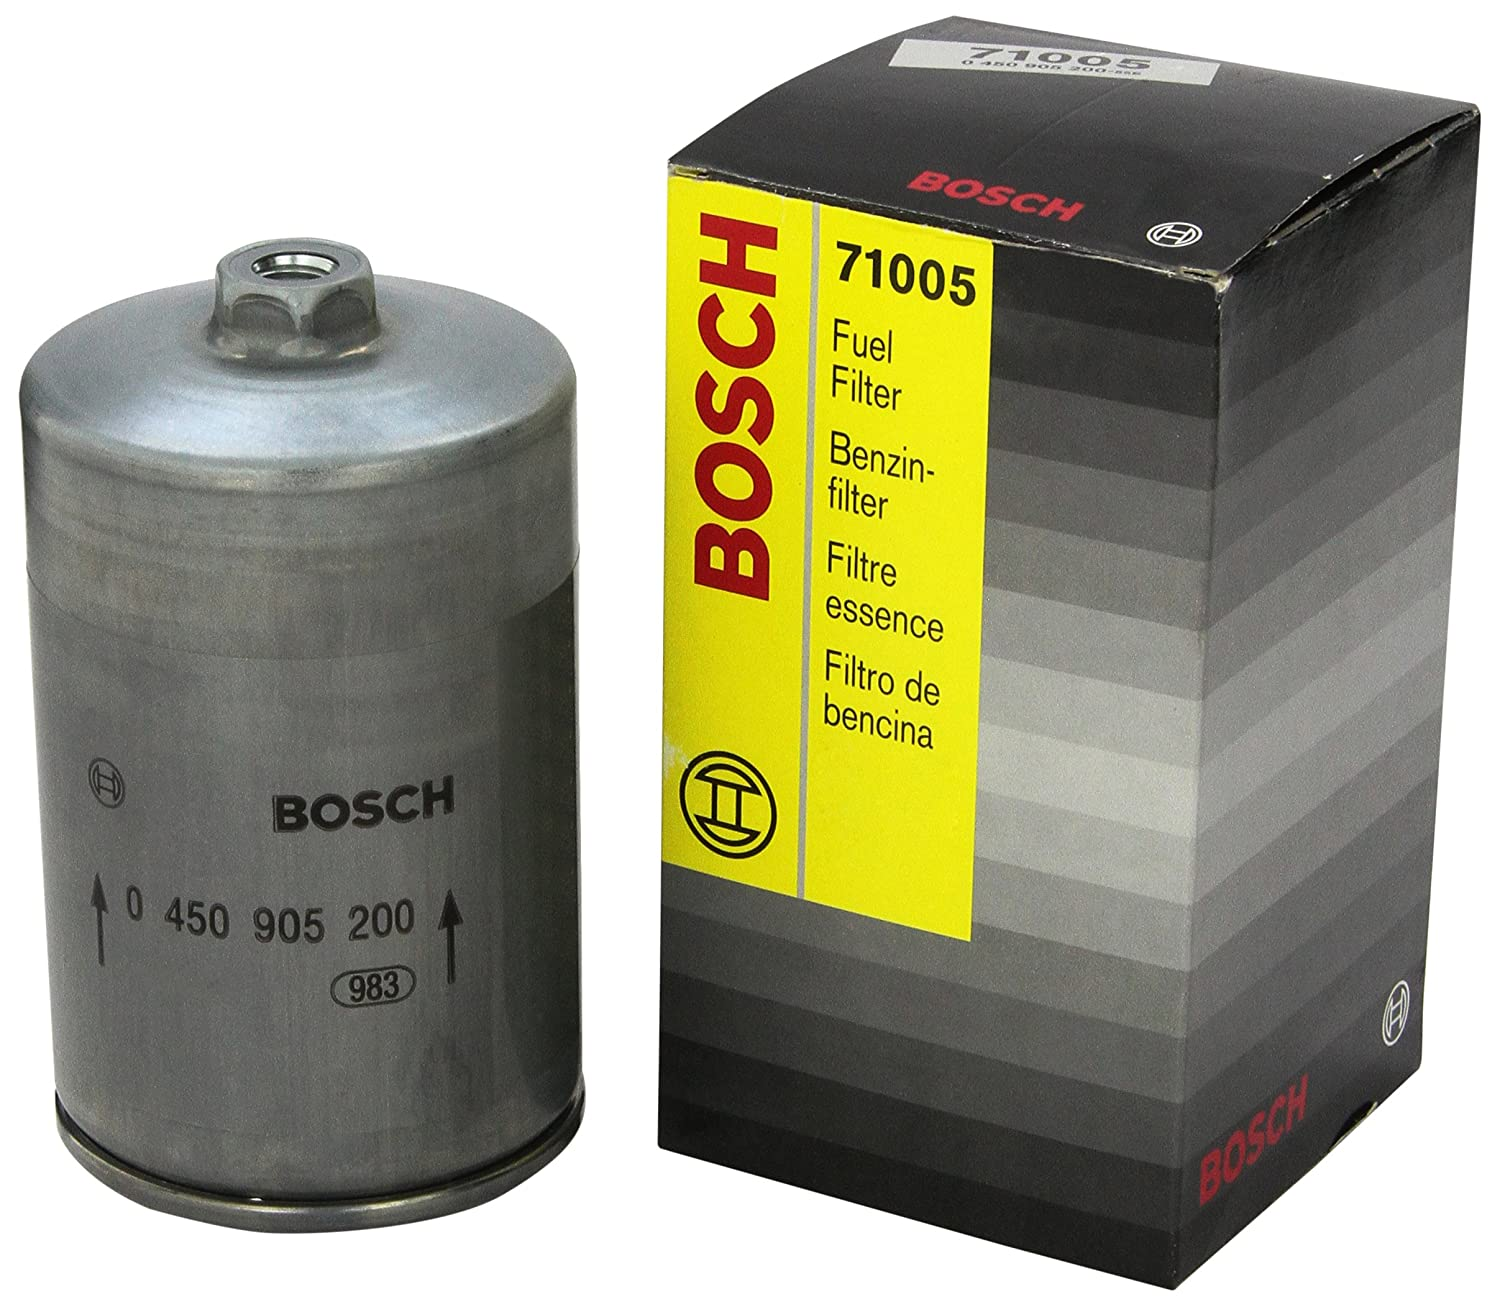 Bosch 71005 Fuel Filter Outlet Volvo 960 1997 Location